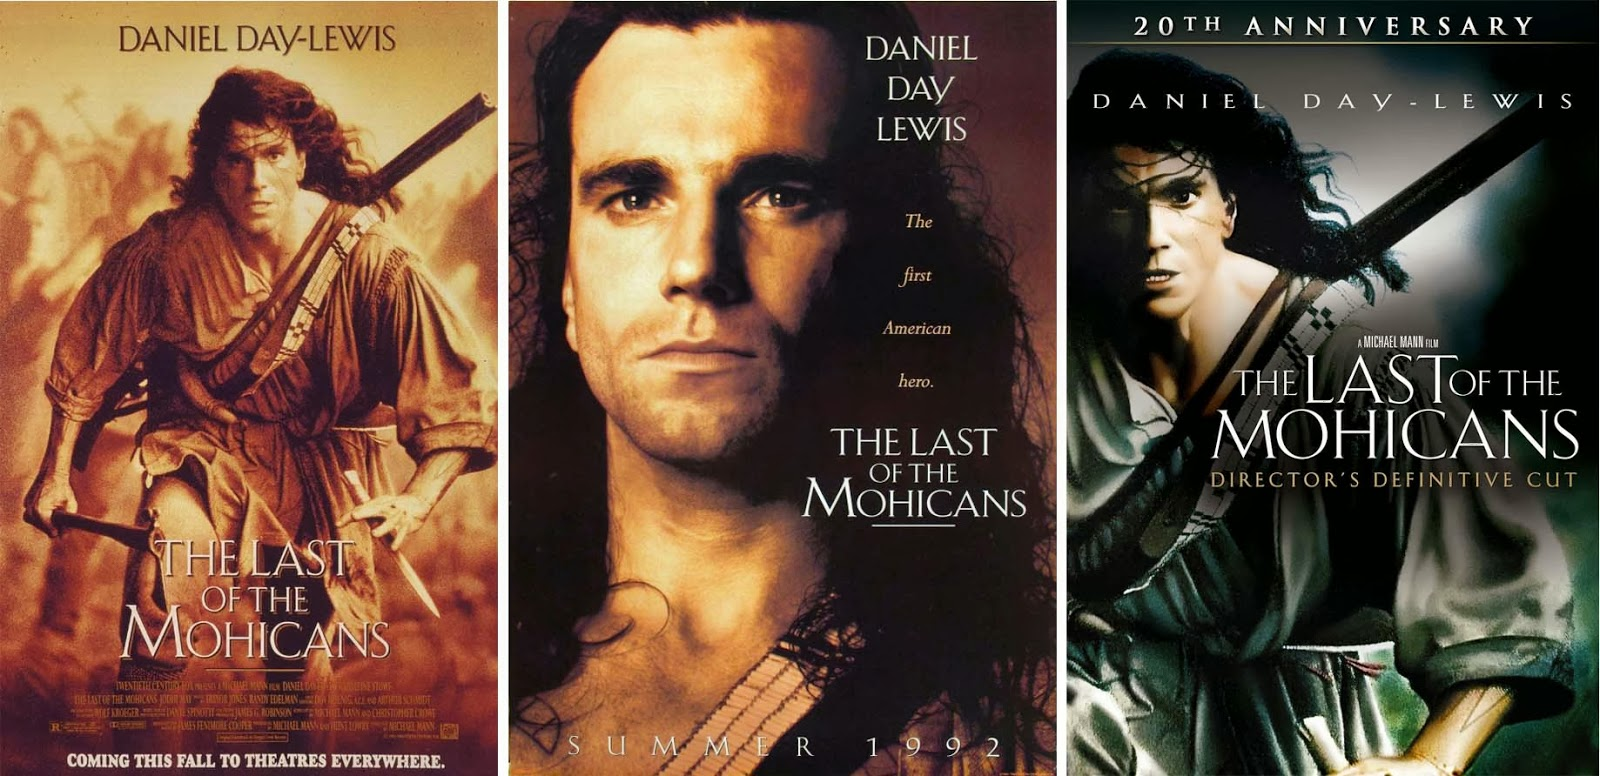 The Last of the Mohicans - Ostatni Mohikanin (1992)